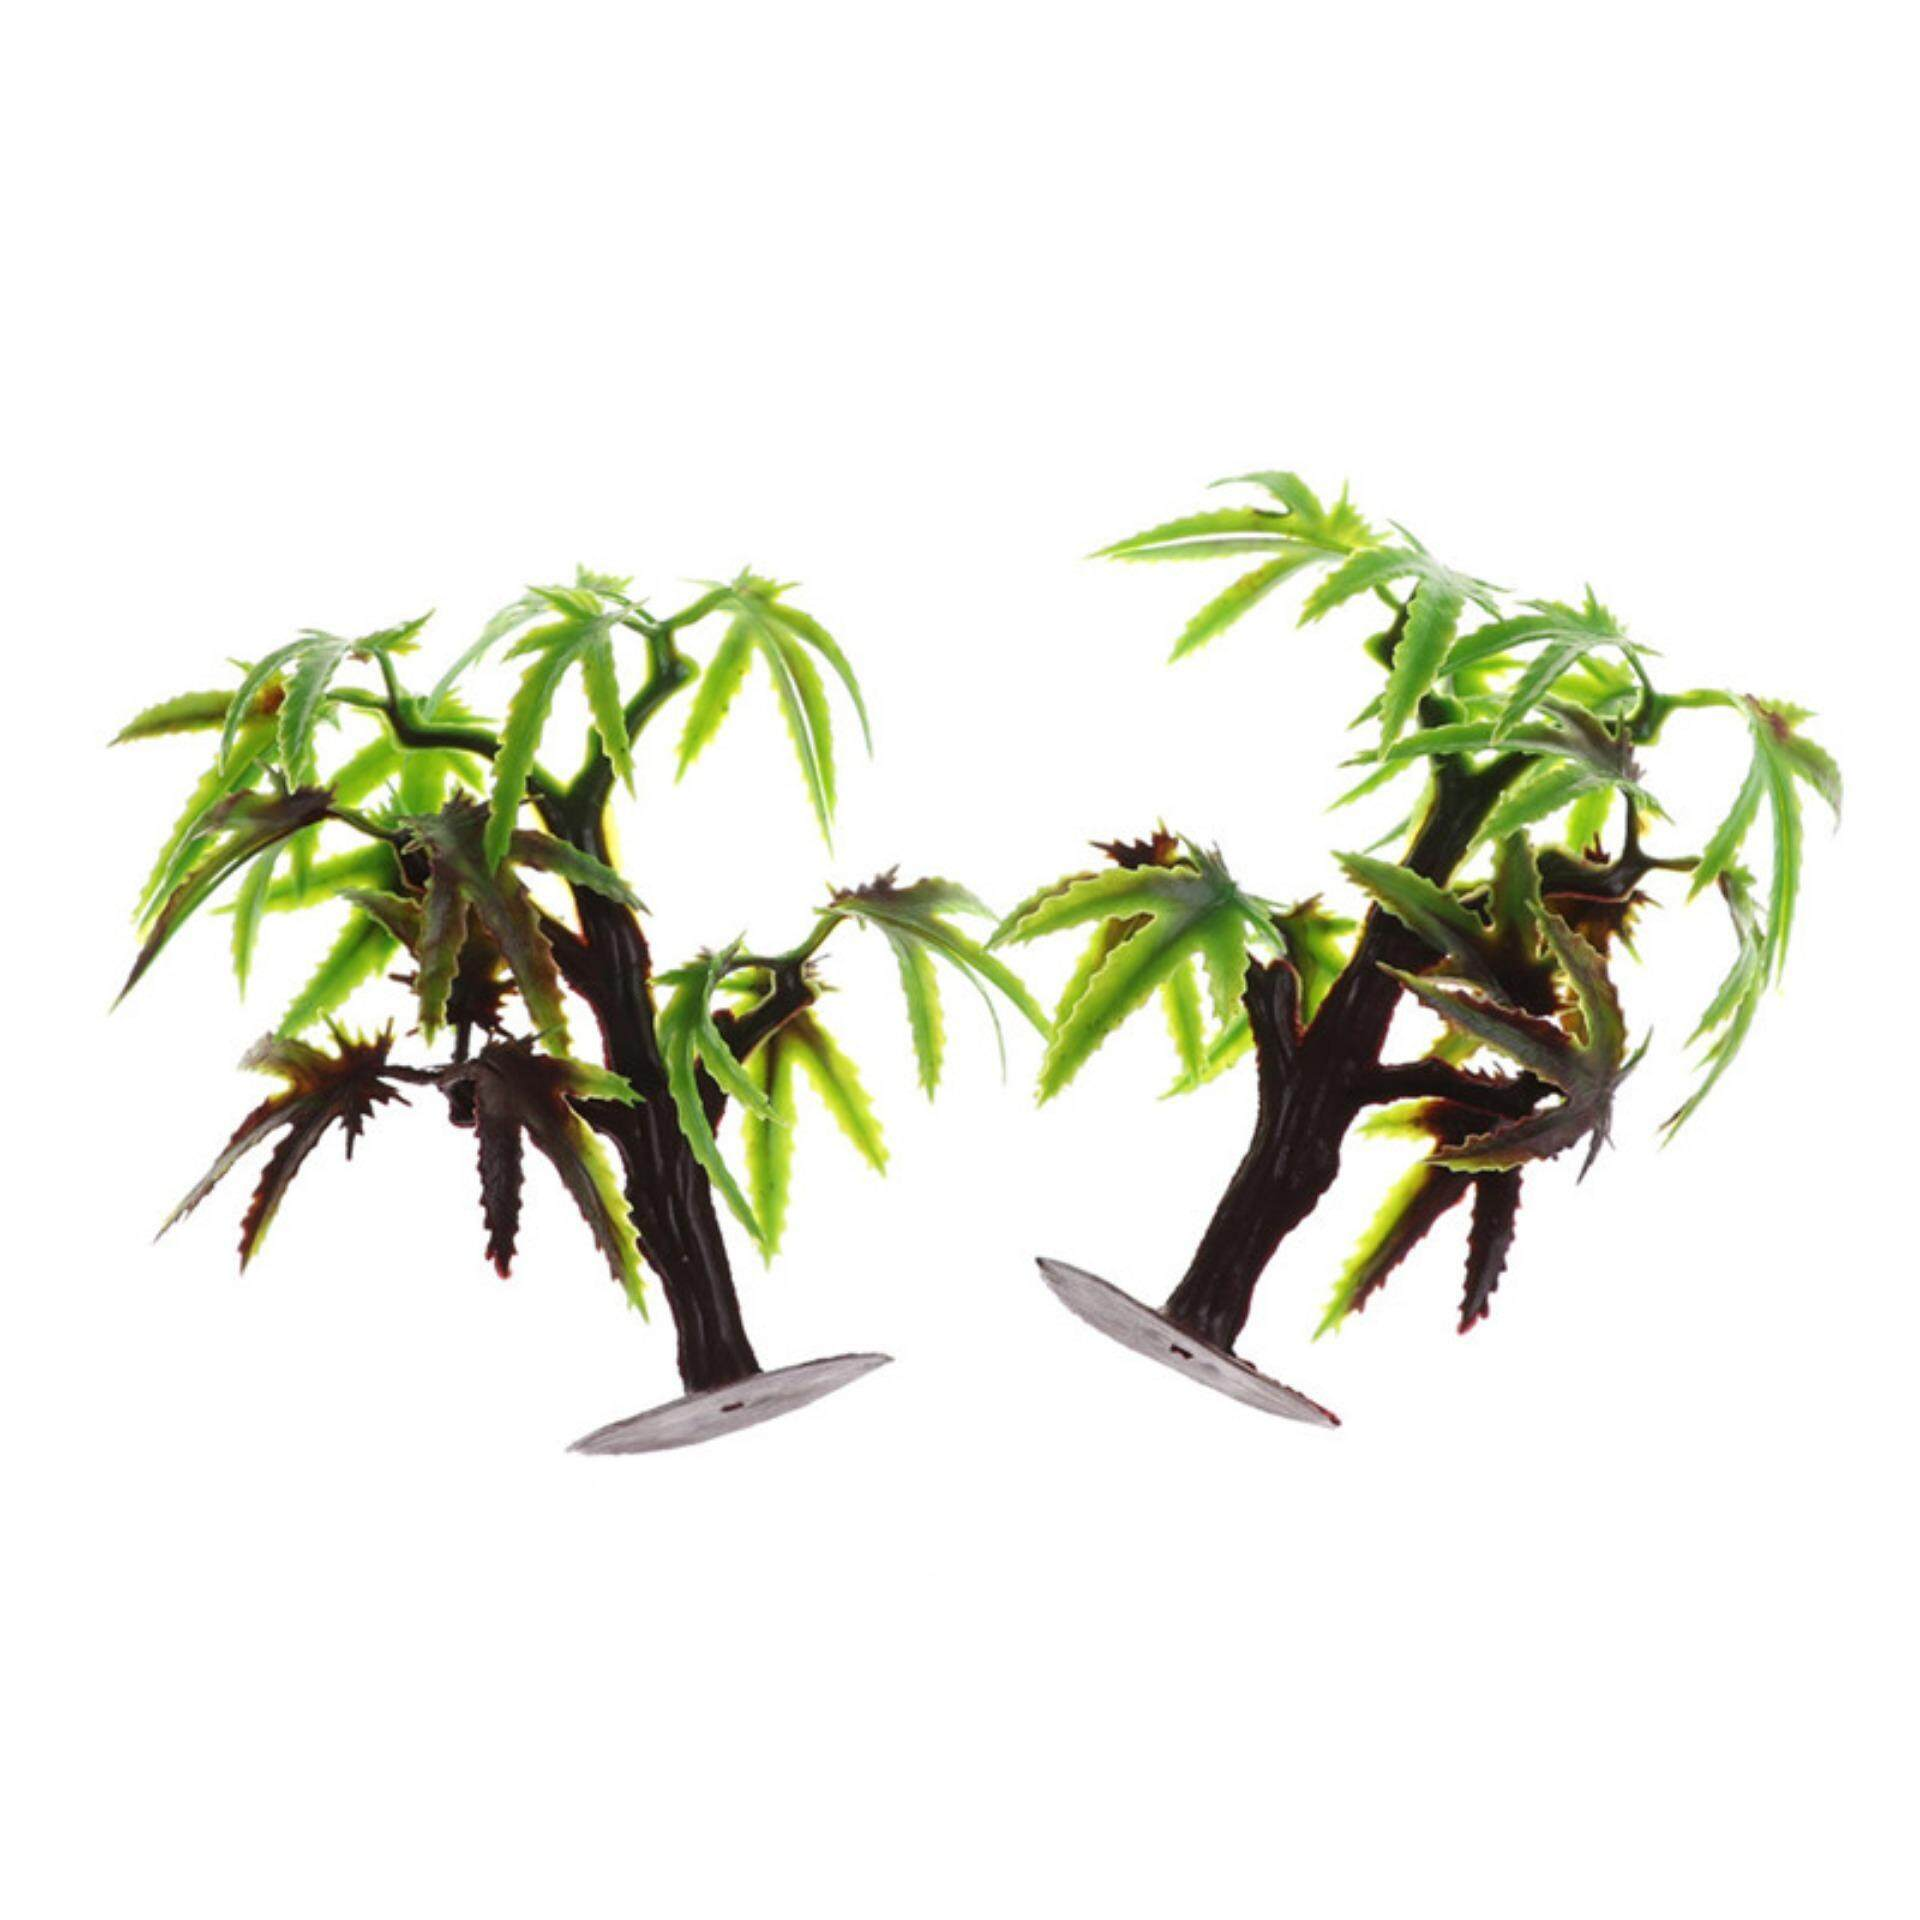 2pcs Dollhouse Mini Maple Tree Sand Table Model Micro Landscape Decor